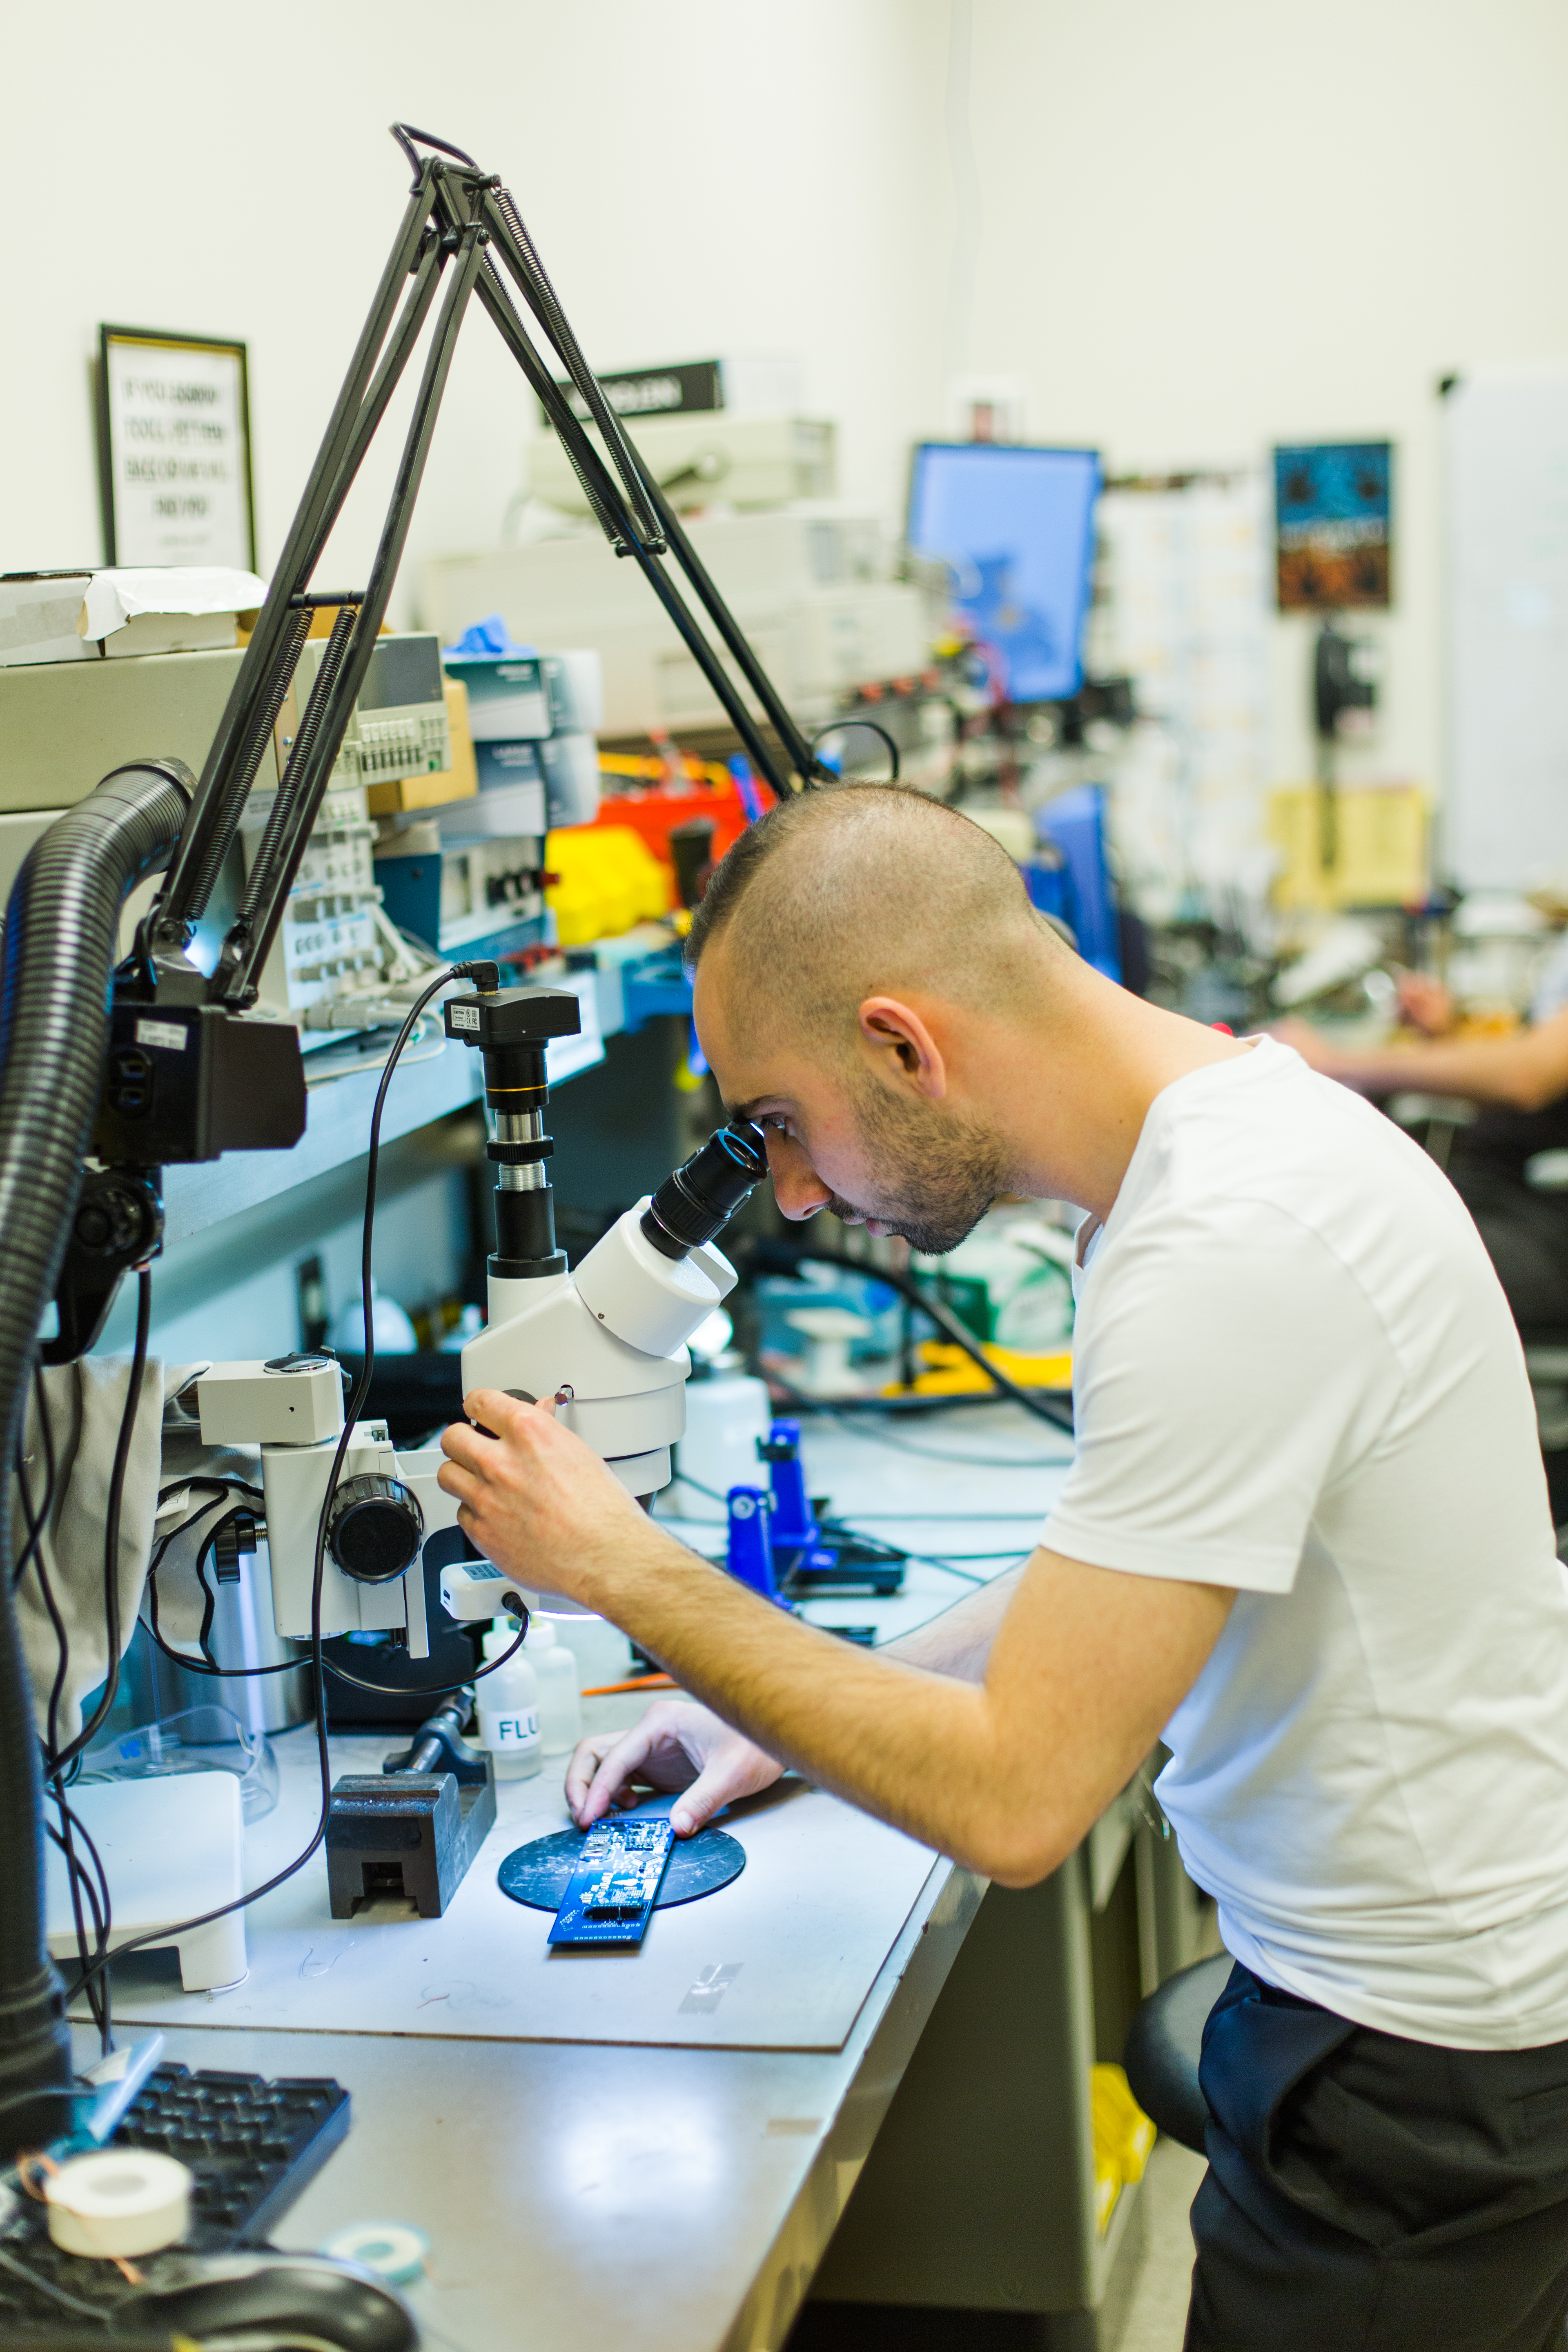 EECE Student Working in a lab